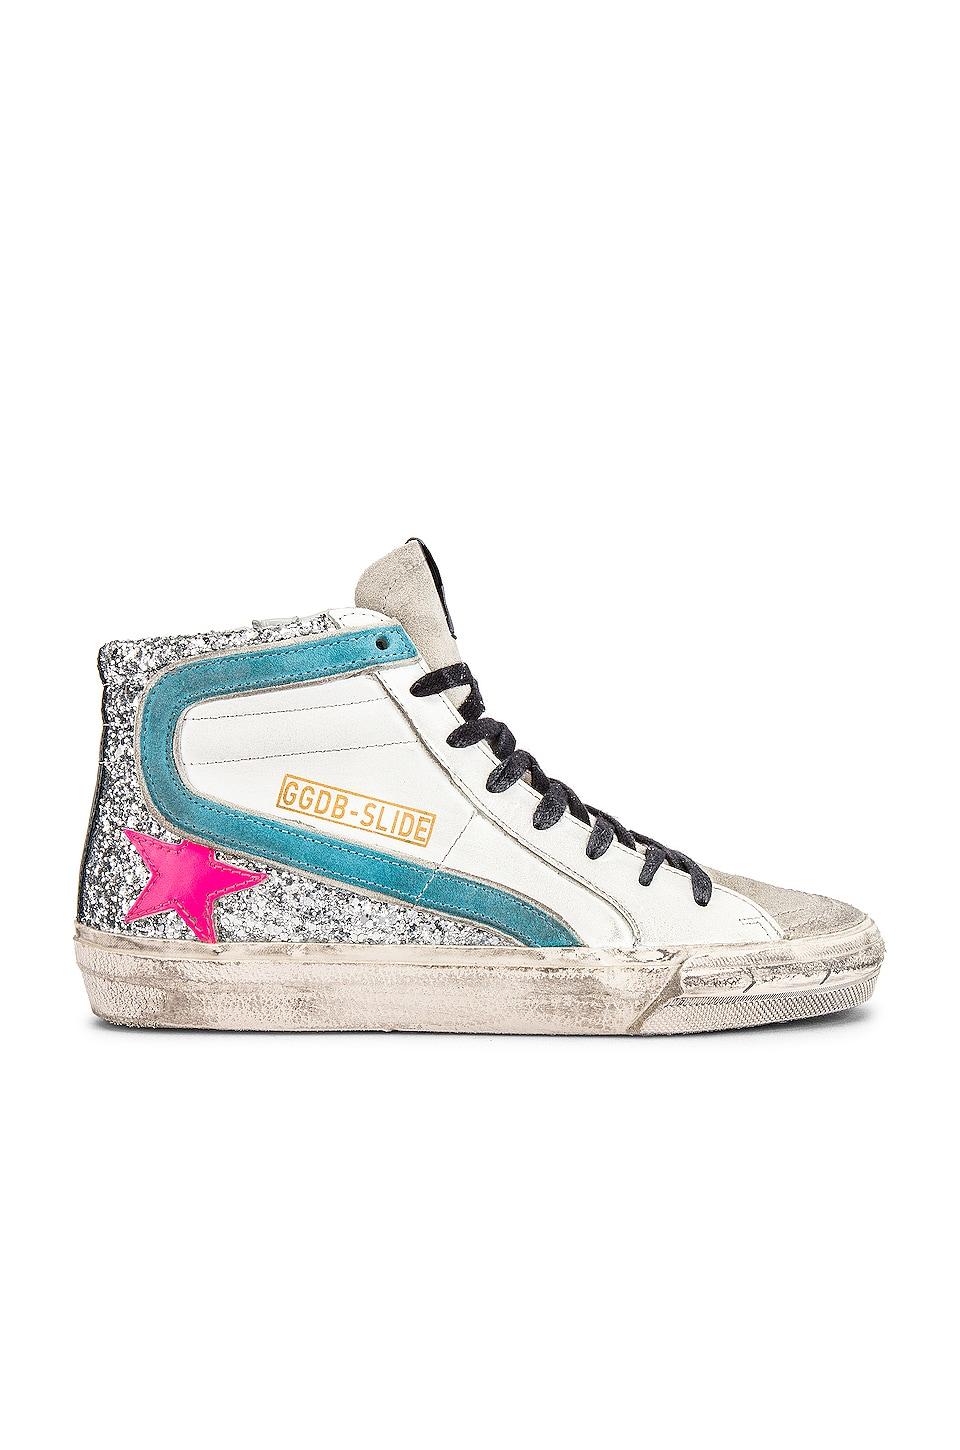 Golden Goose Slide Snaker in White, Silver Glitter & Fuchsia Star